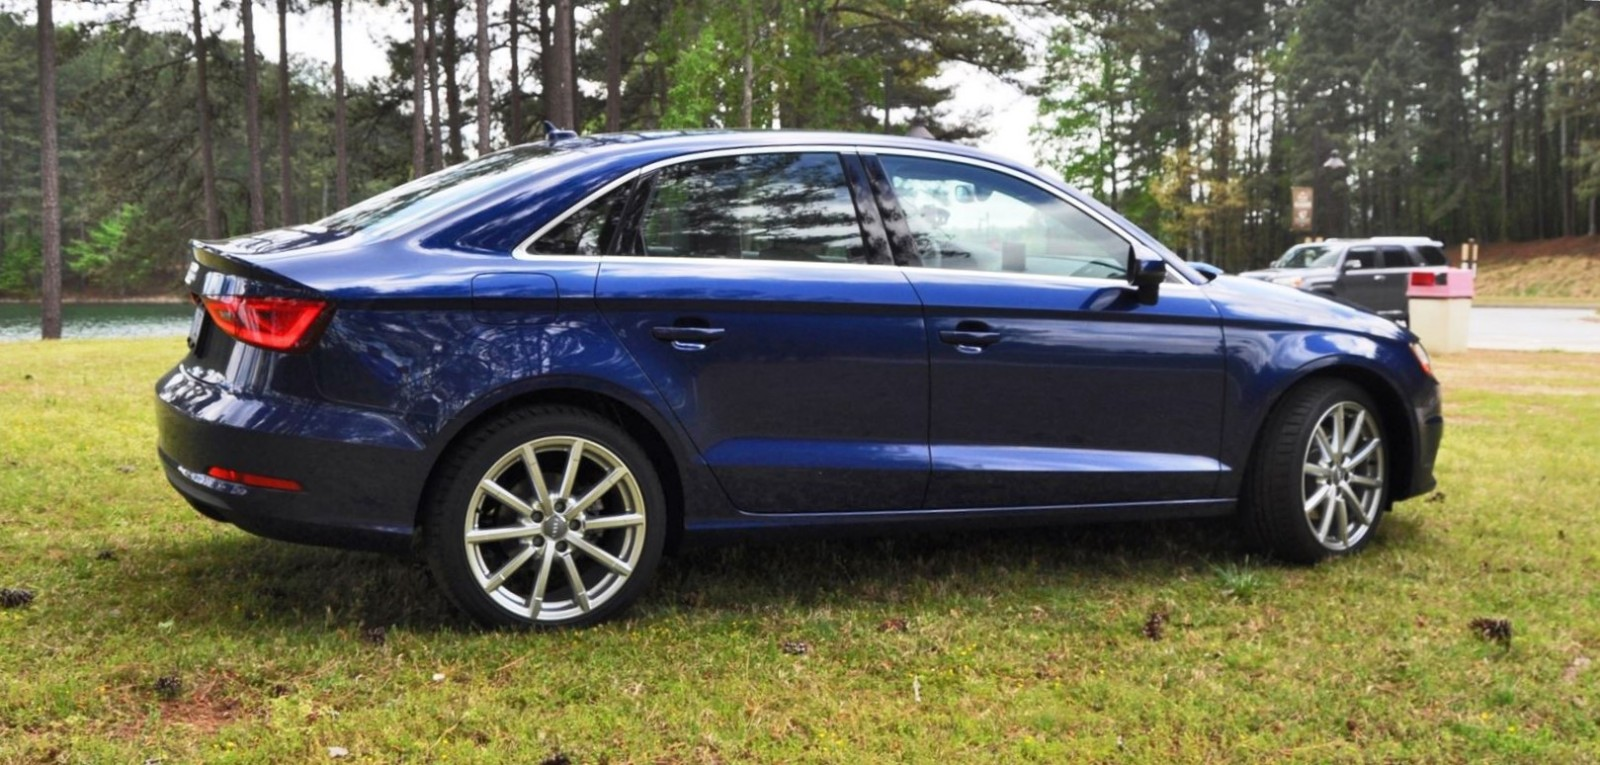 2015 audi a3 1 8t sedan review. Black Bedroom Furniture Sets. Home Design Ideas